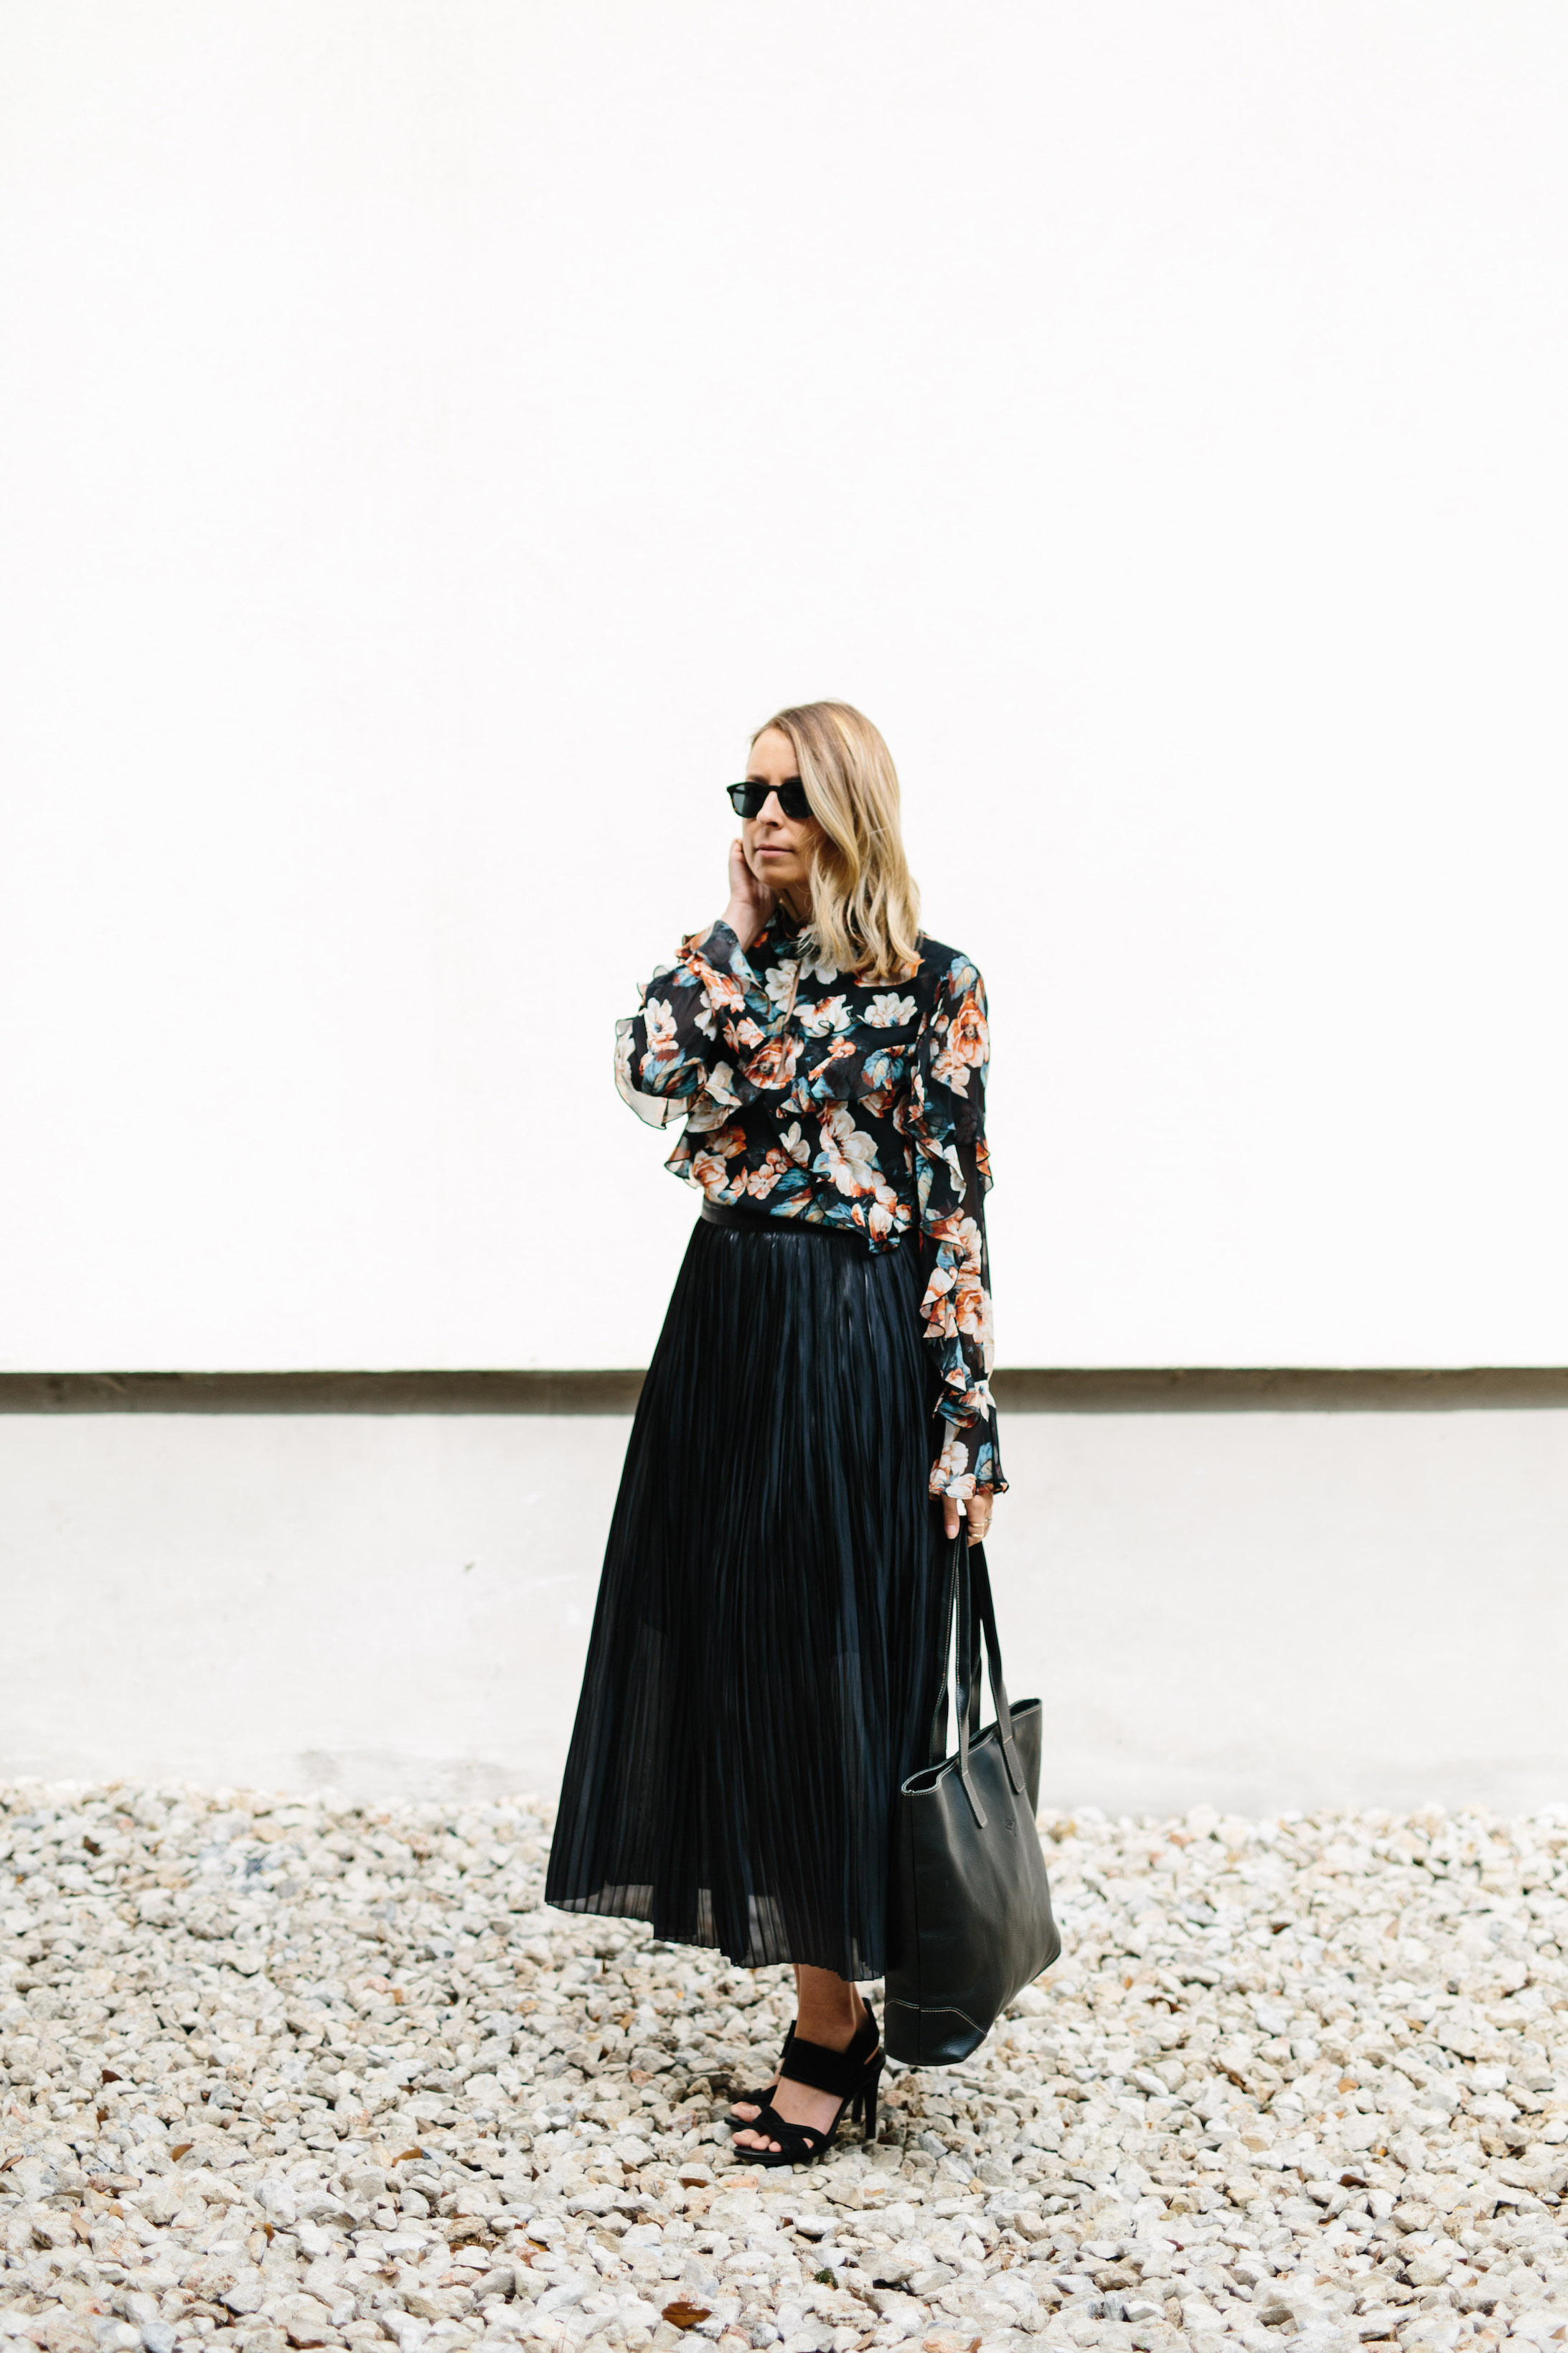 Black skirt and floral top for a business meeting // A Week Of Summertime Minimalist Outfits With Ava Darnell, Founder Of Slumlove Sweater Company on The Good Trade